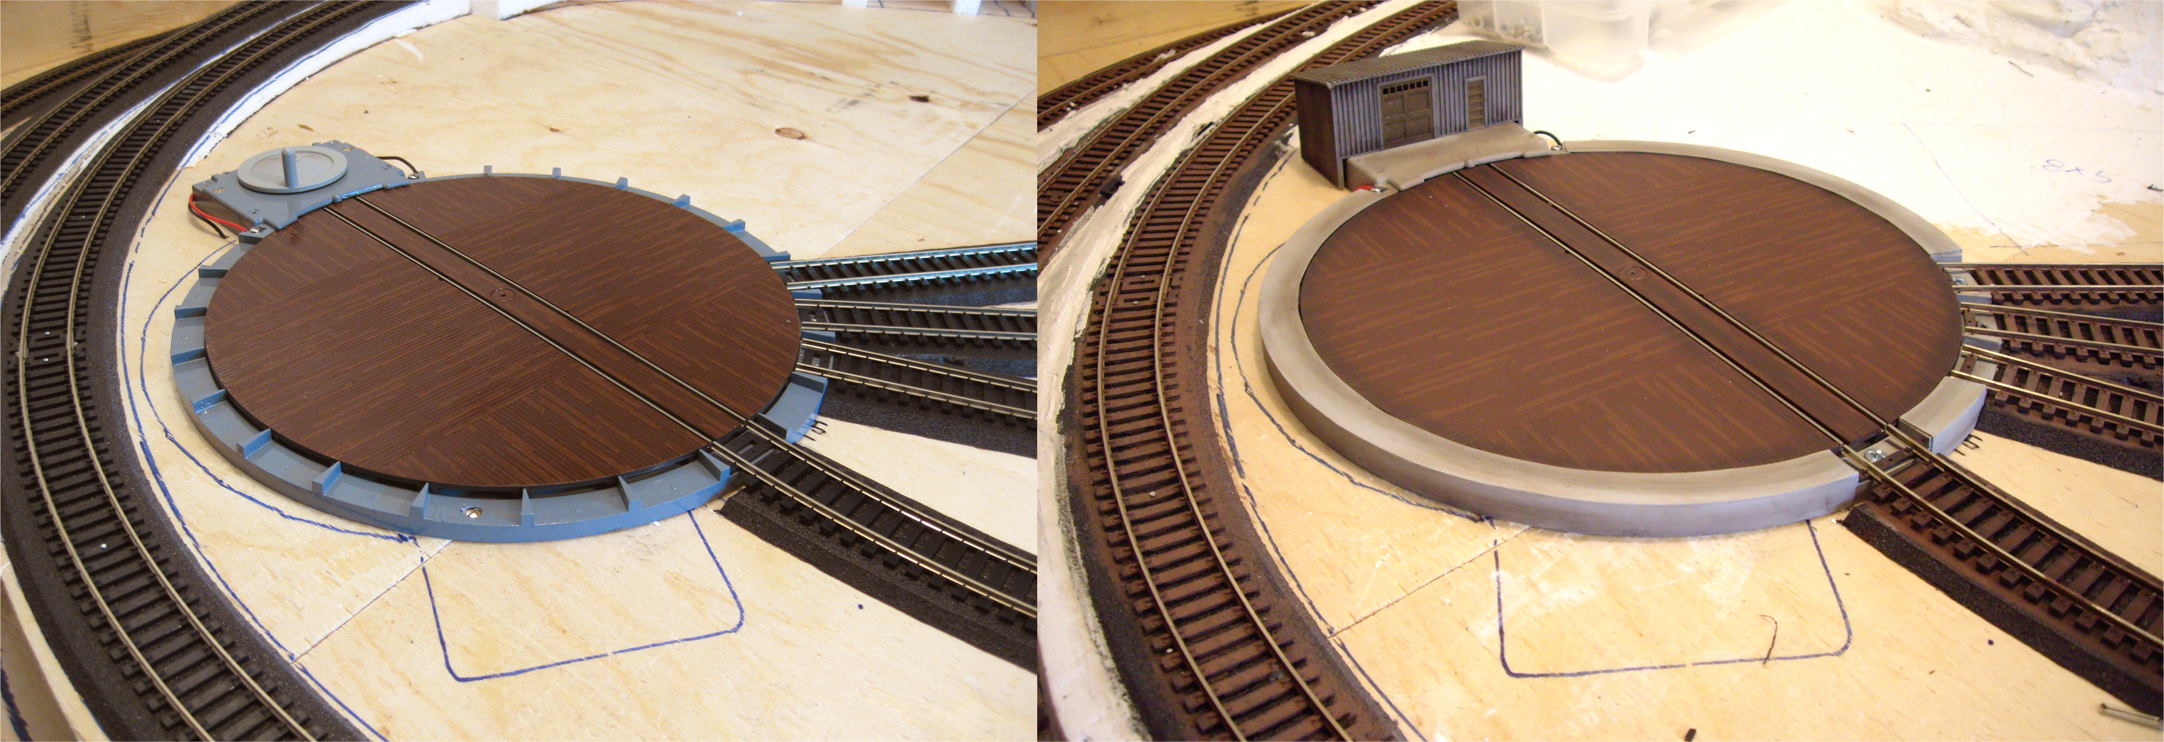 Before and after photo depicting an Atlas turn table prior to and after having its base modified and painted to look like a concrete slab